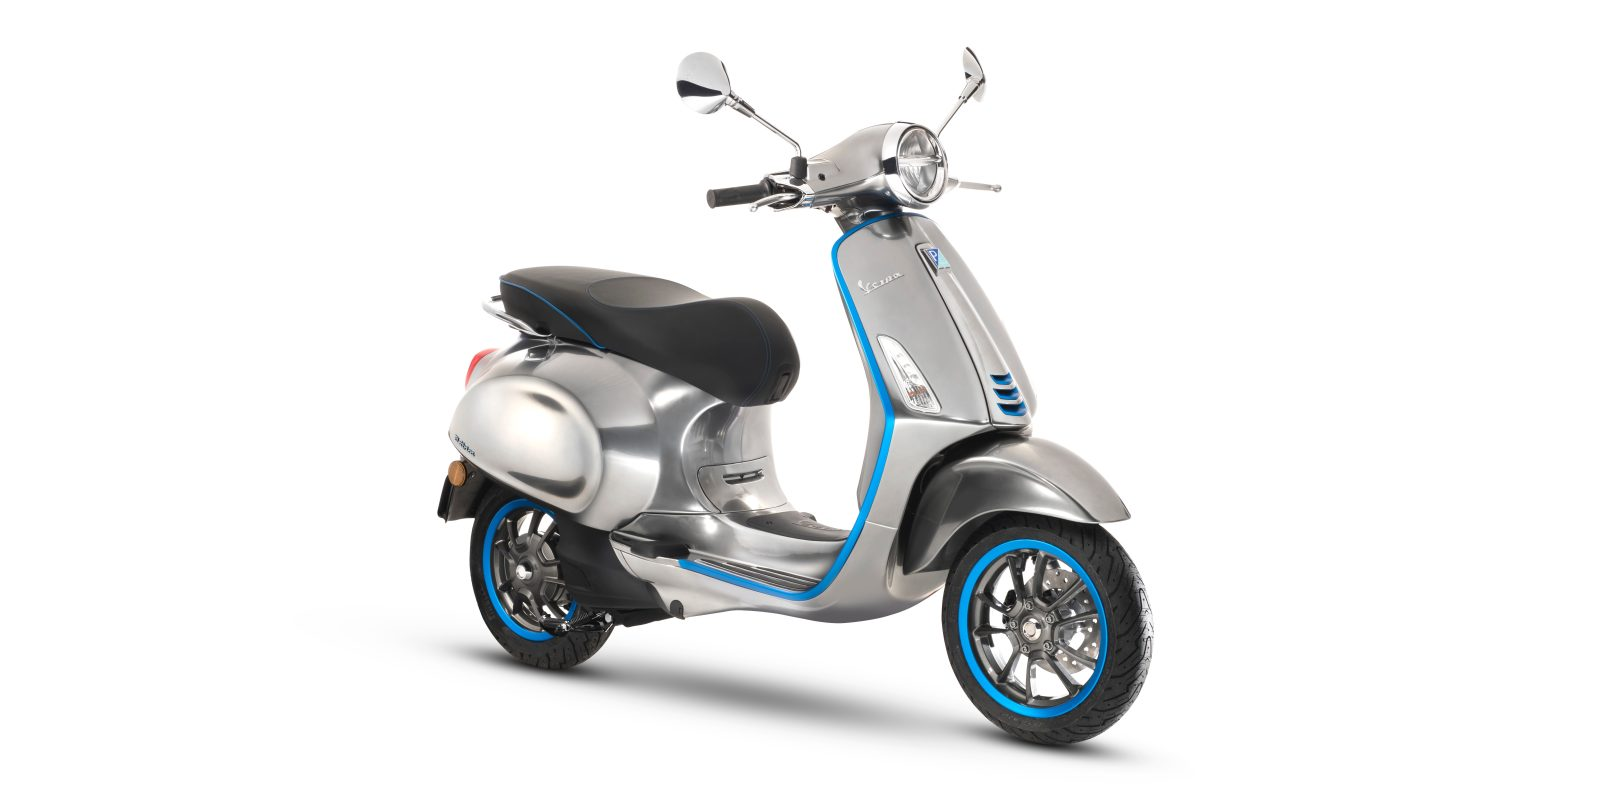 The First Electric Vespa The Elettrica To Finally Enter